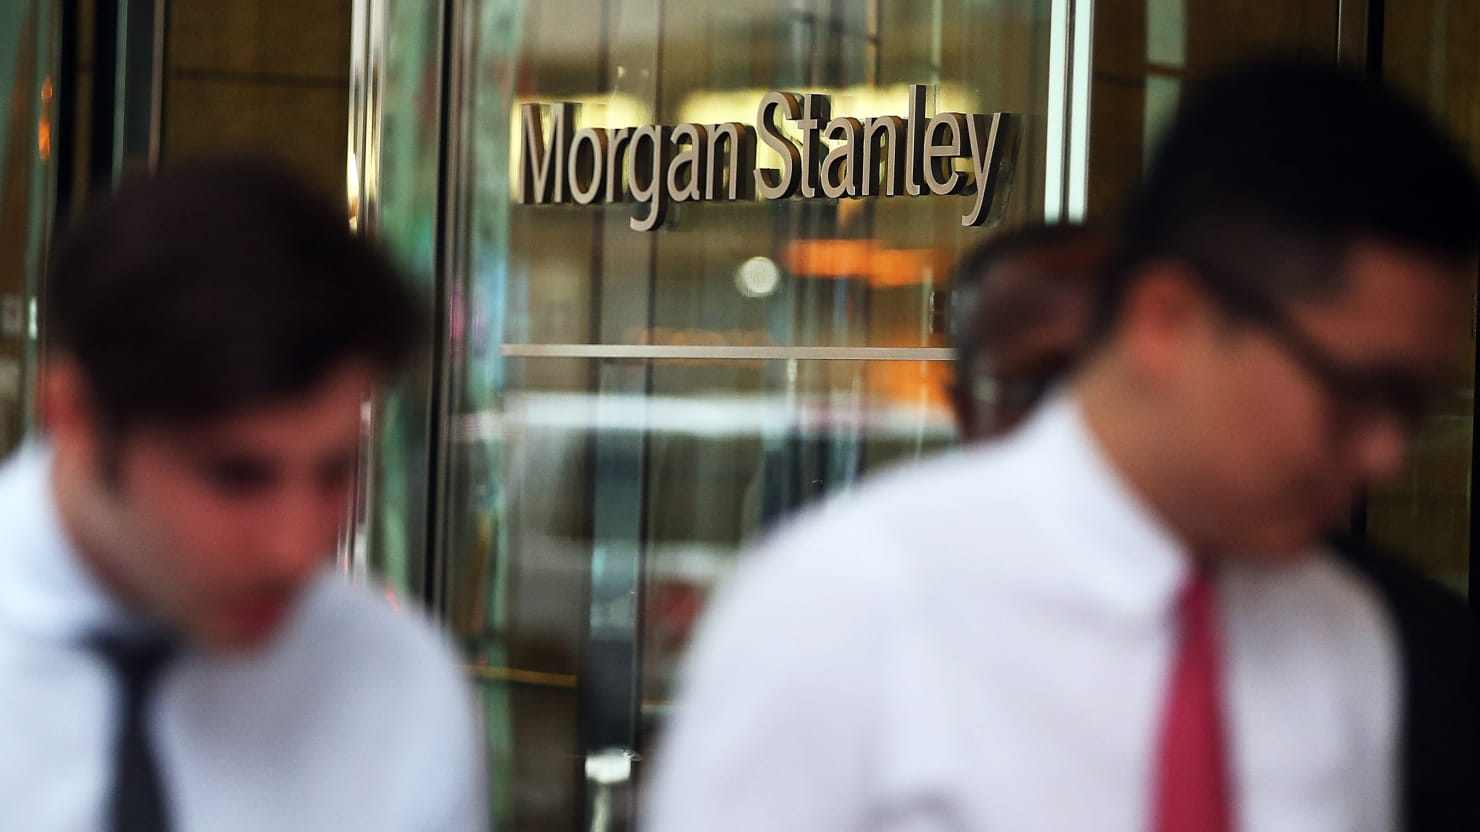 Morgan Stanley retreats from investment banking and trading